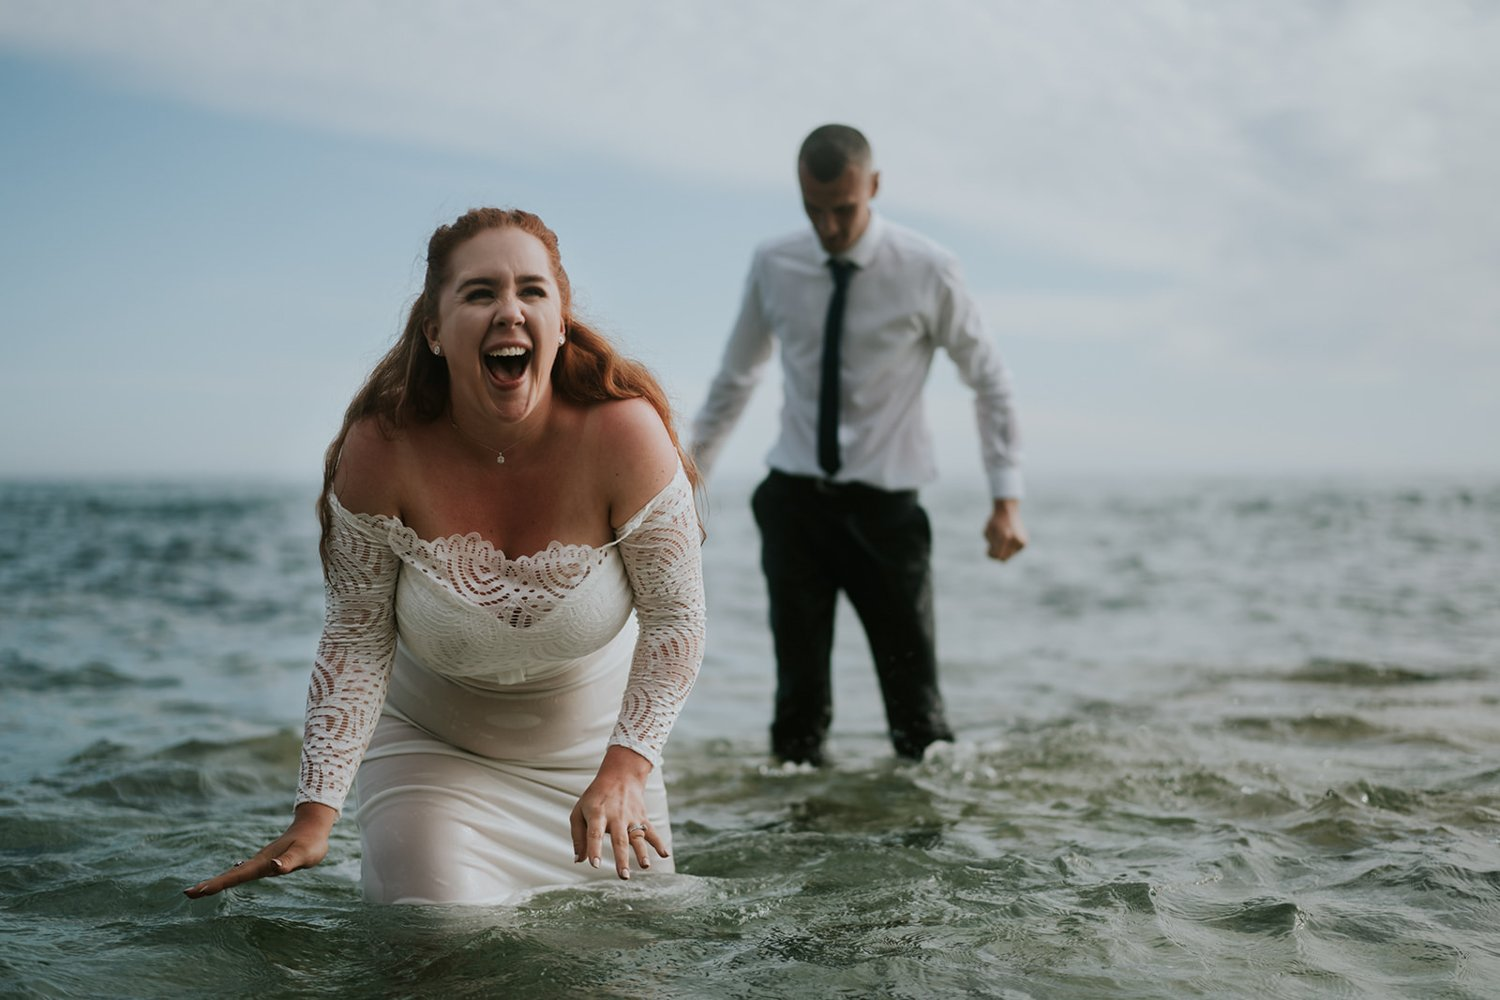 Happy Cornwall Wedding Couple kiss in the sea and have fun